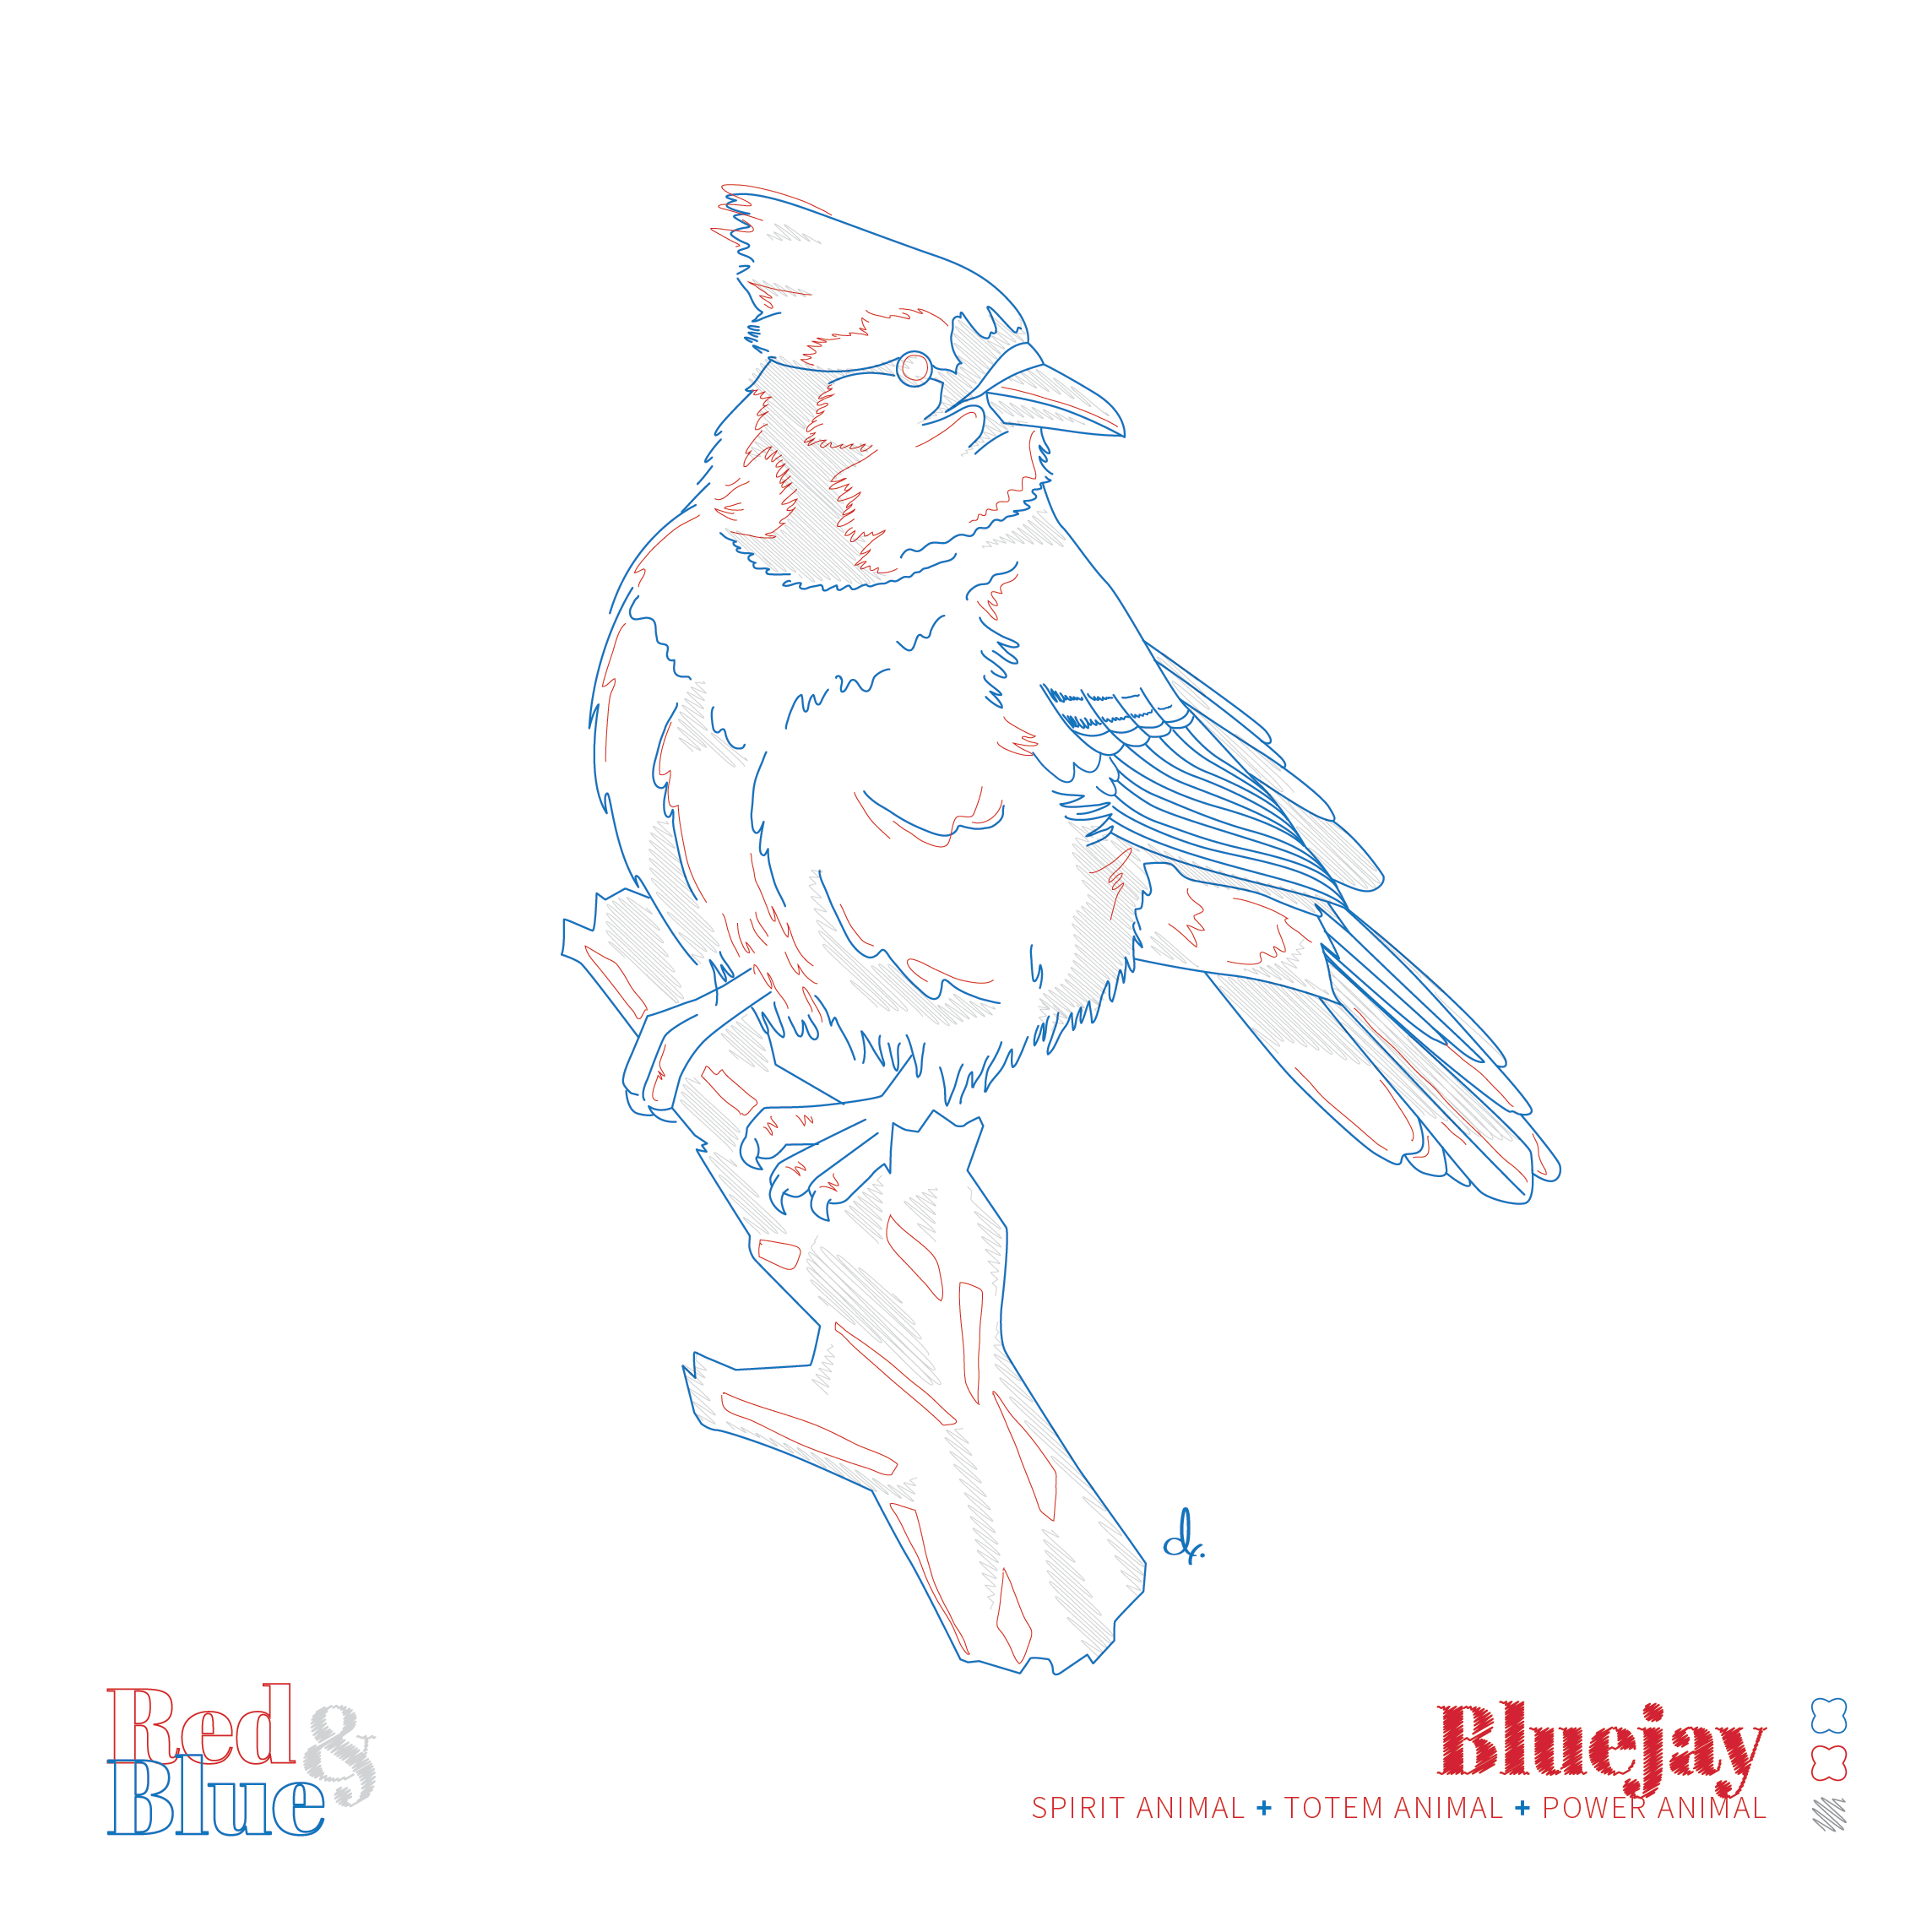 Bluejay Red and Blue Symbolism and Meaning